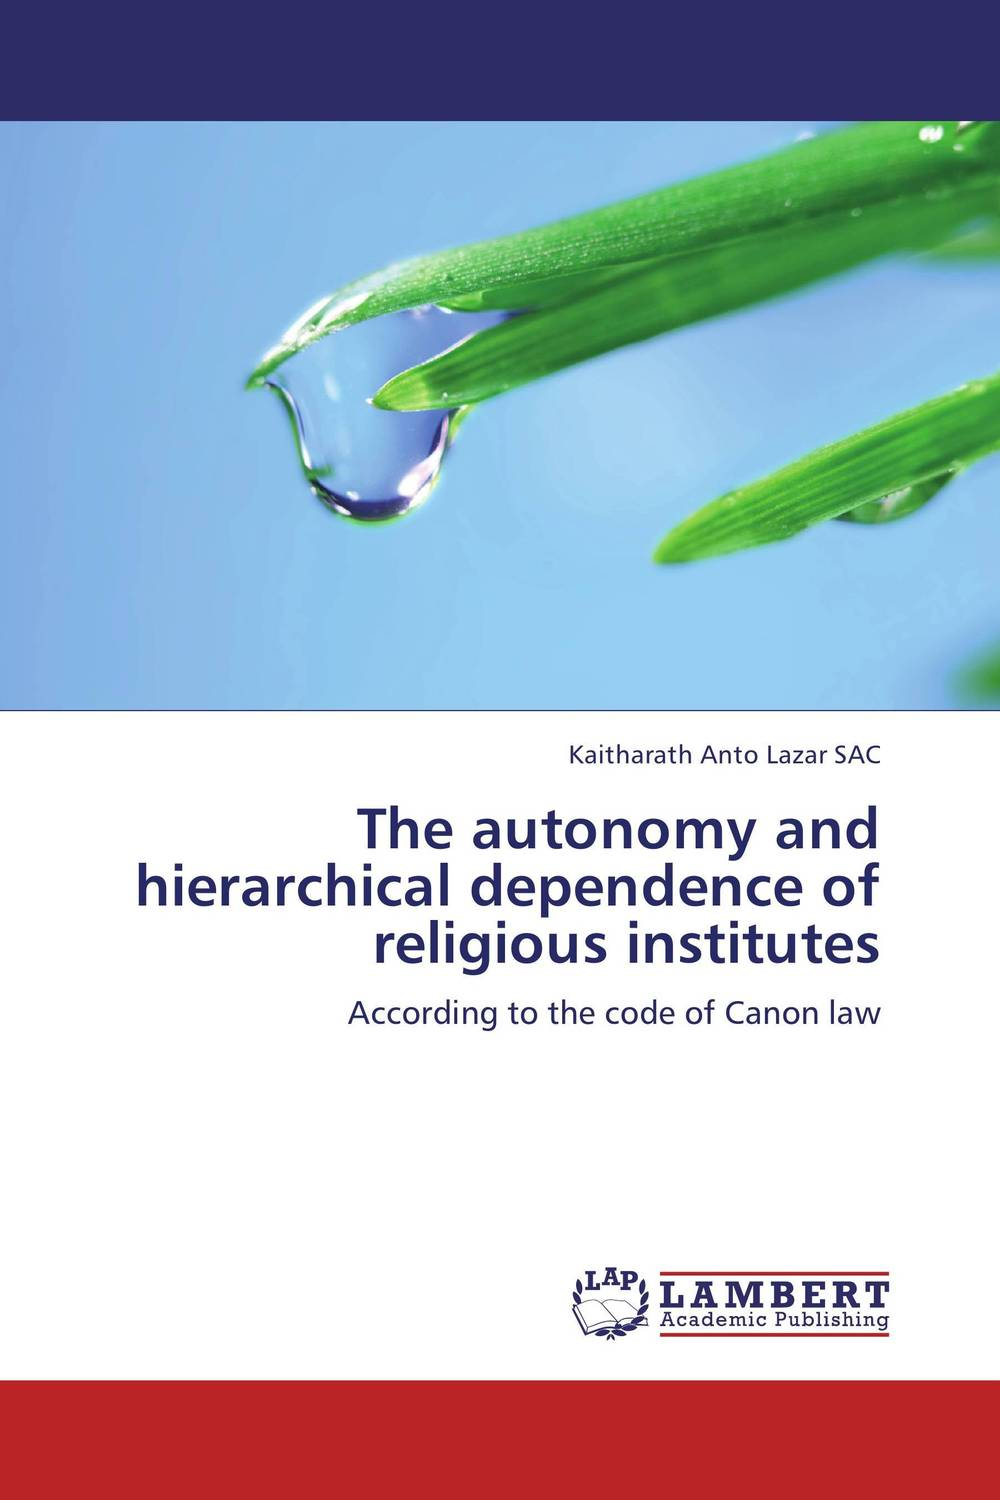 The autonomy and hierarchical dependence of religious institutes autonomy theory and implementation